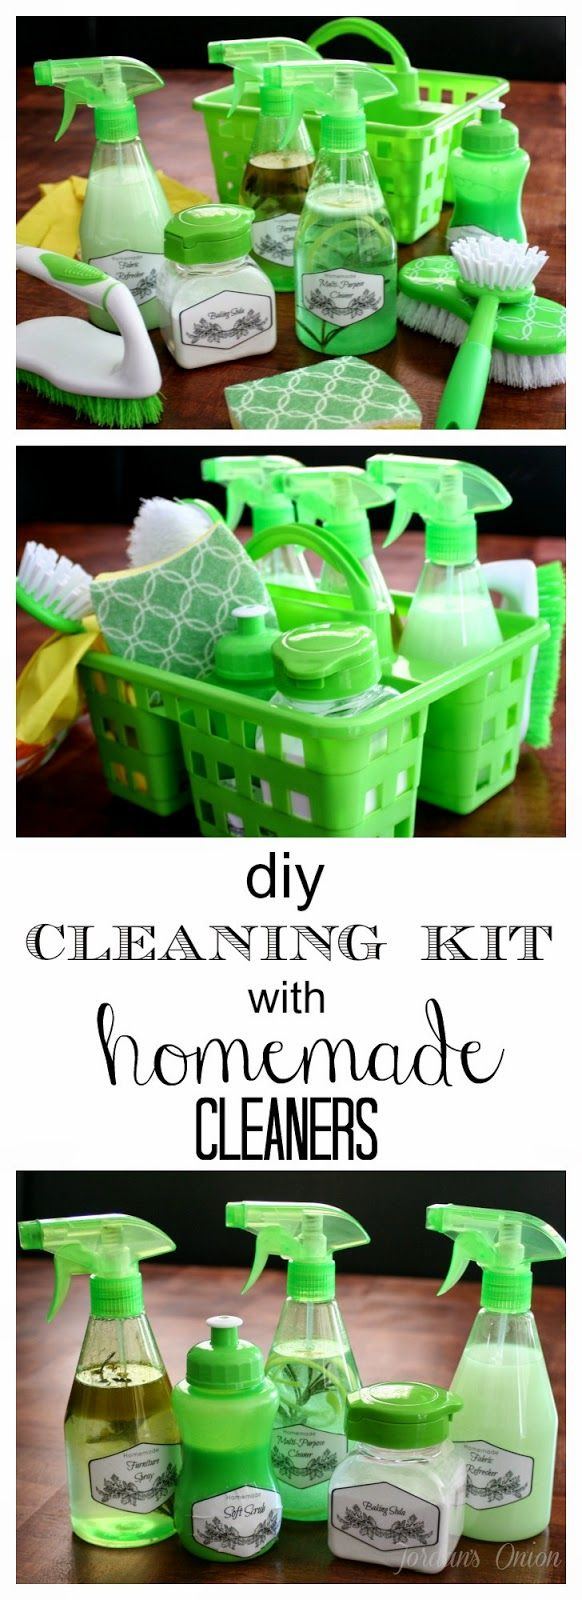 Keep your house sparkling clean with a DIY Cleaning Kit with Homemade Cleaning products. Labels and recipes included